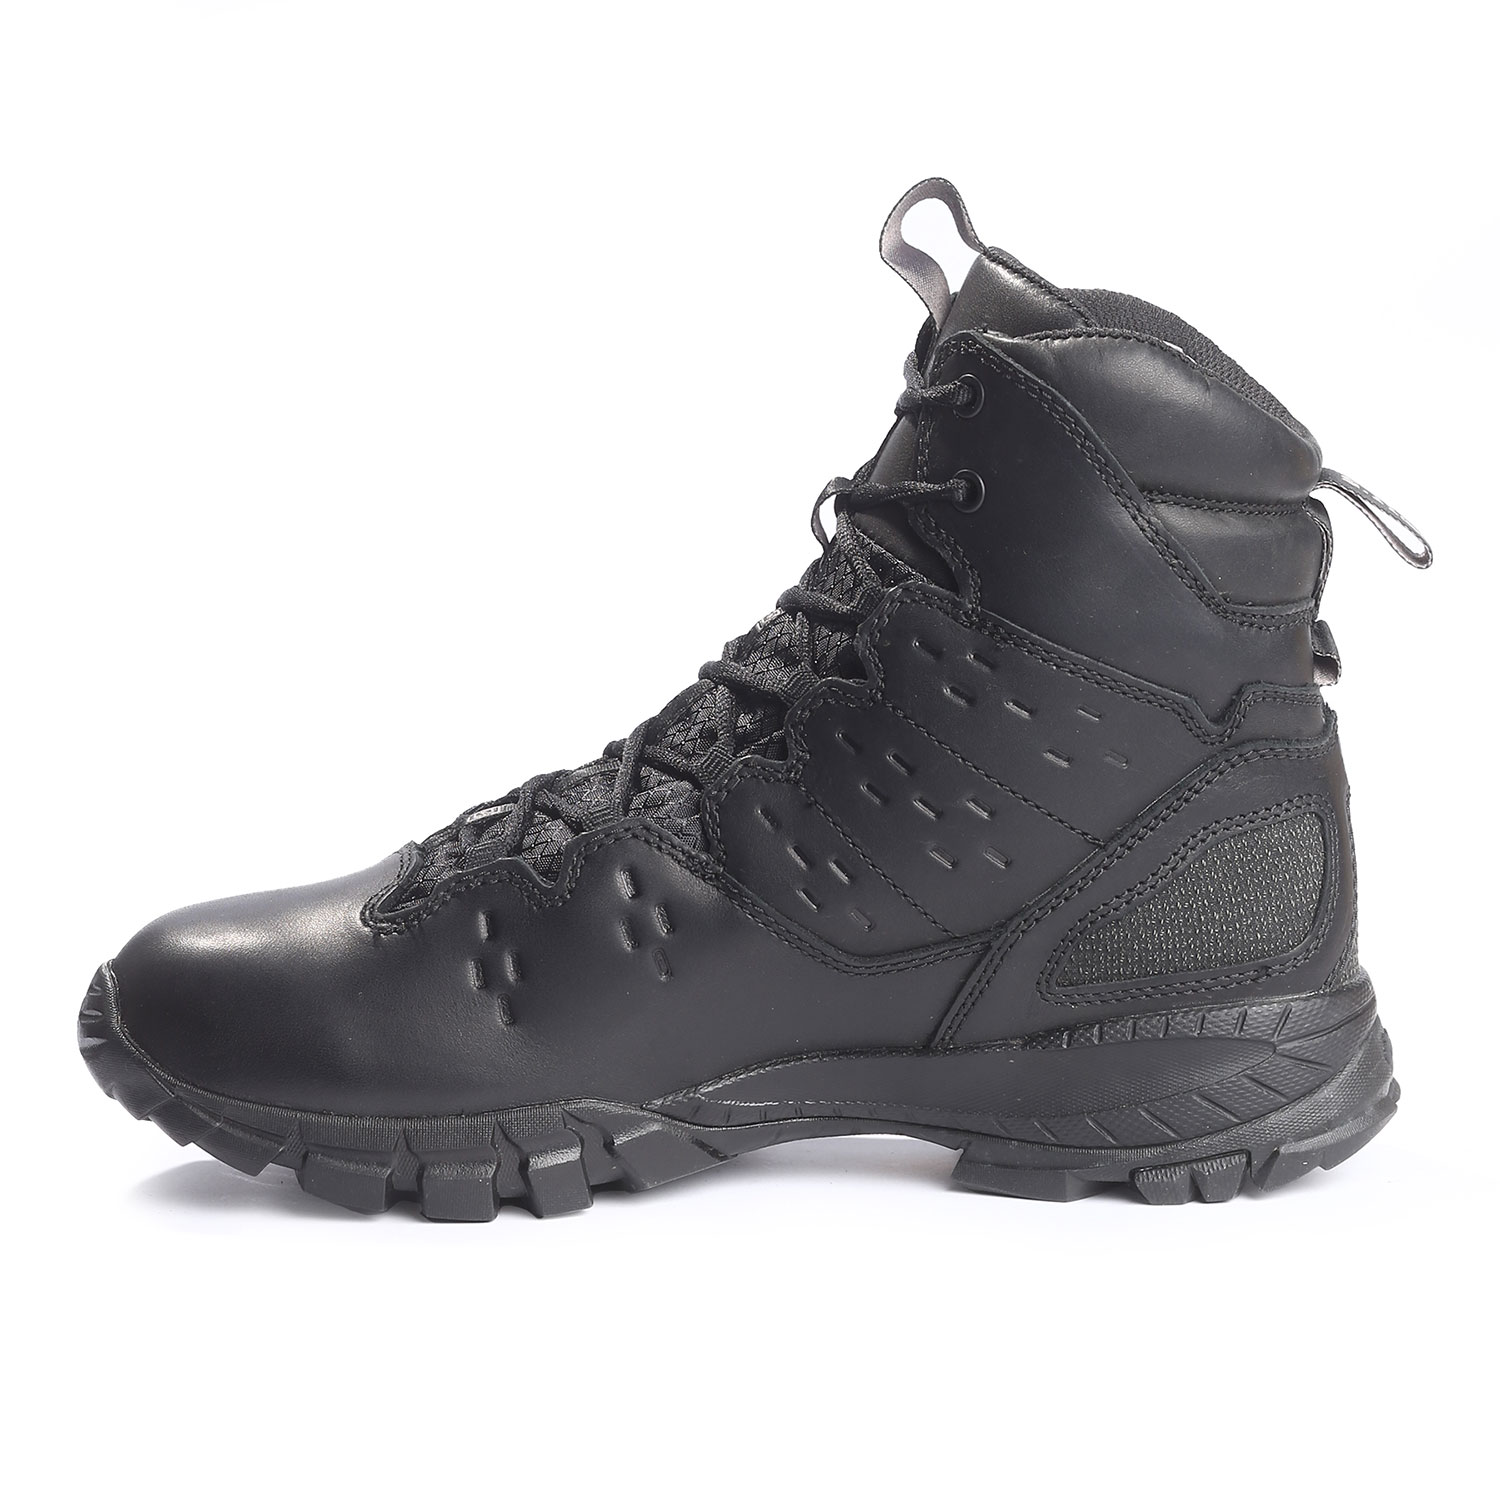 5 11 Xprt 3 0 Waterproof 6 Quot Boot